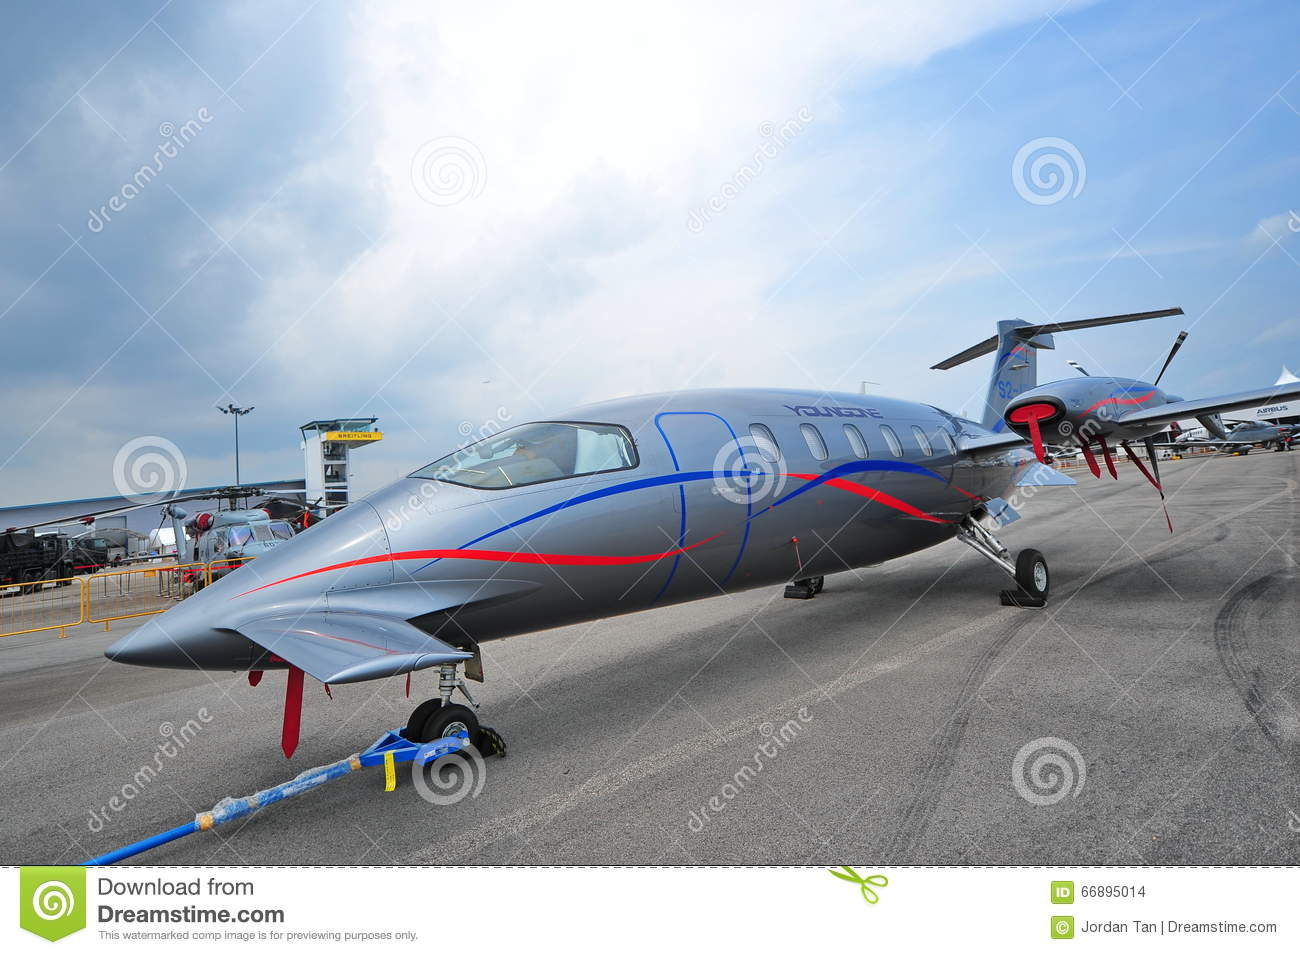 piaggio aero p180 avanti ii business turboprop jet on display at